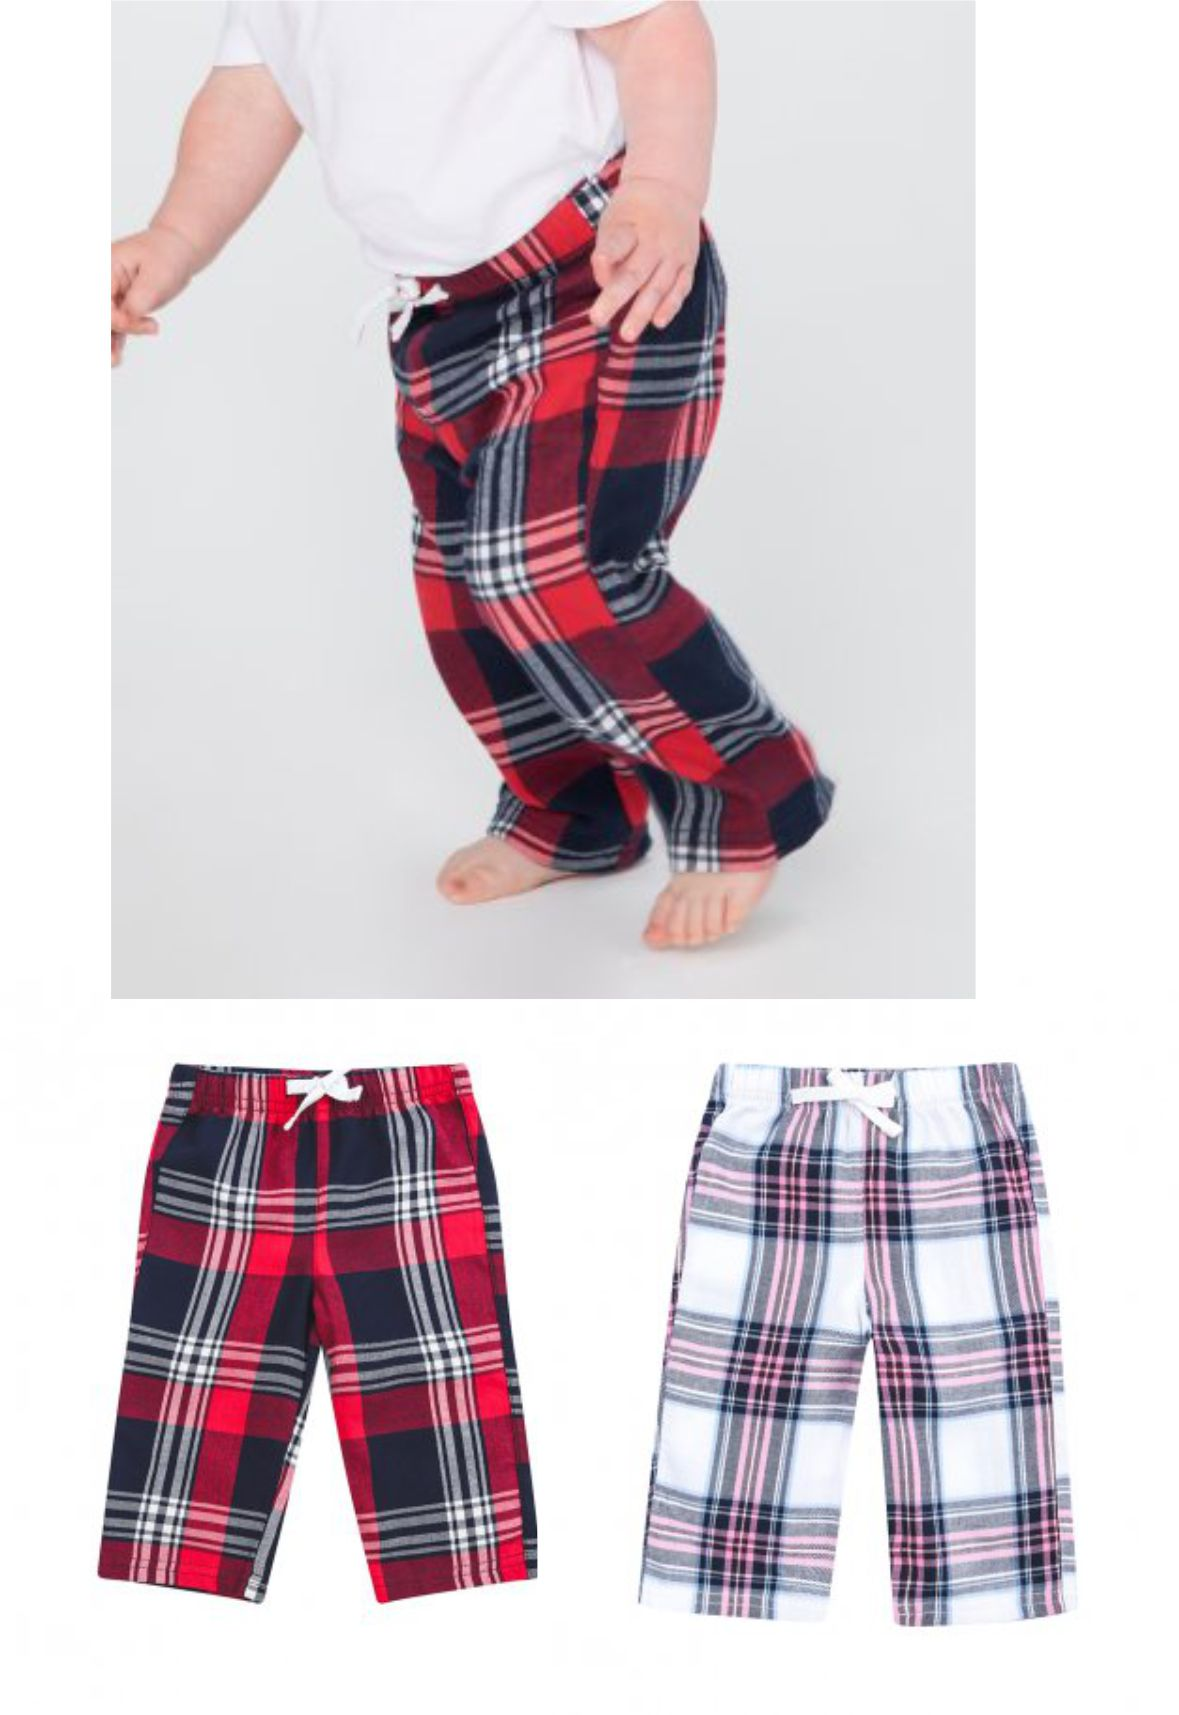 LW83T Baby/toddler Lounge Pants